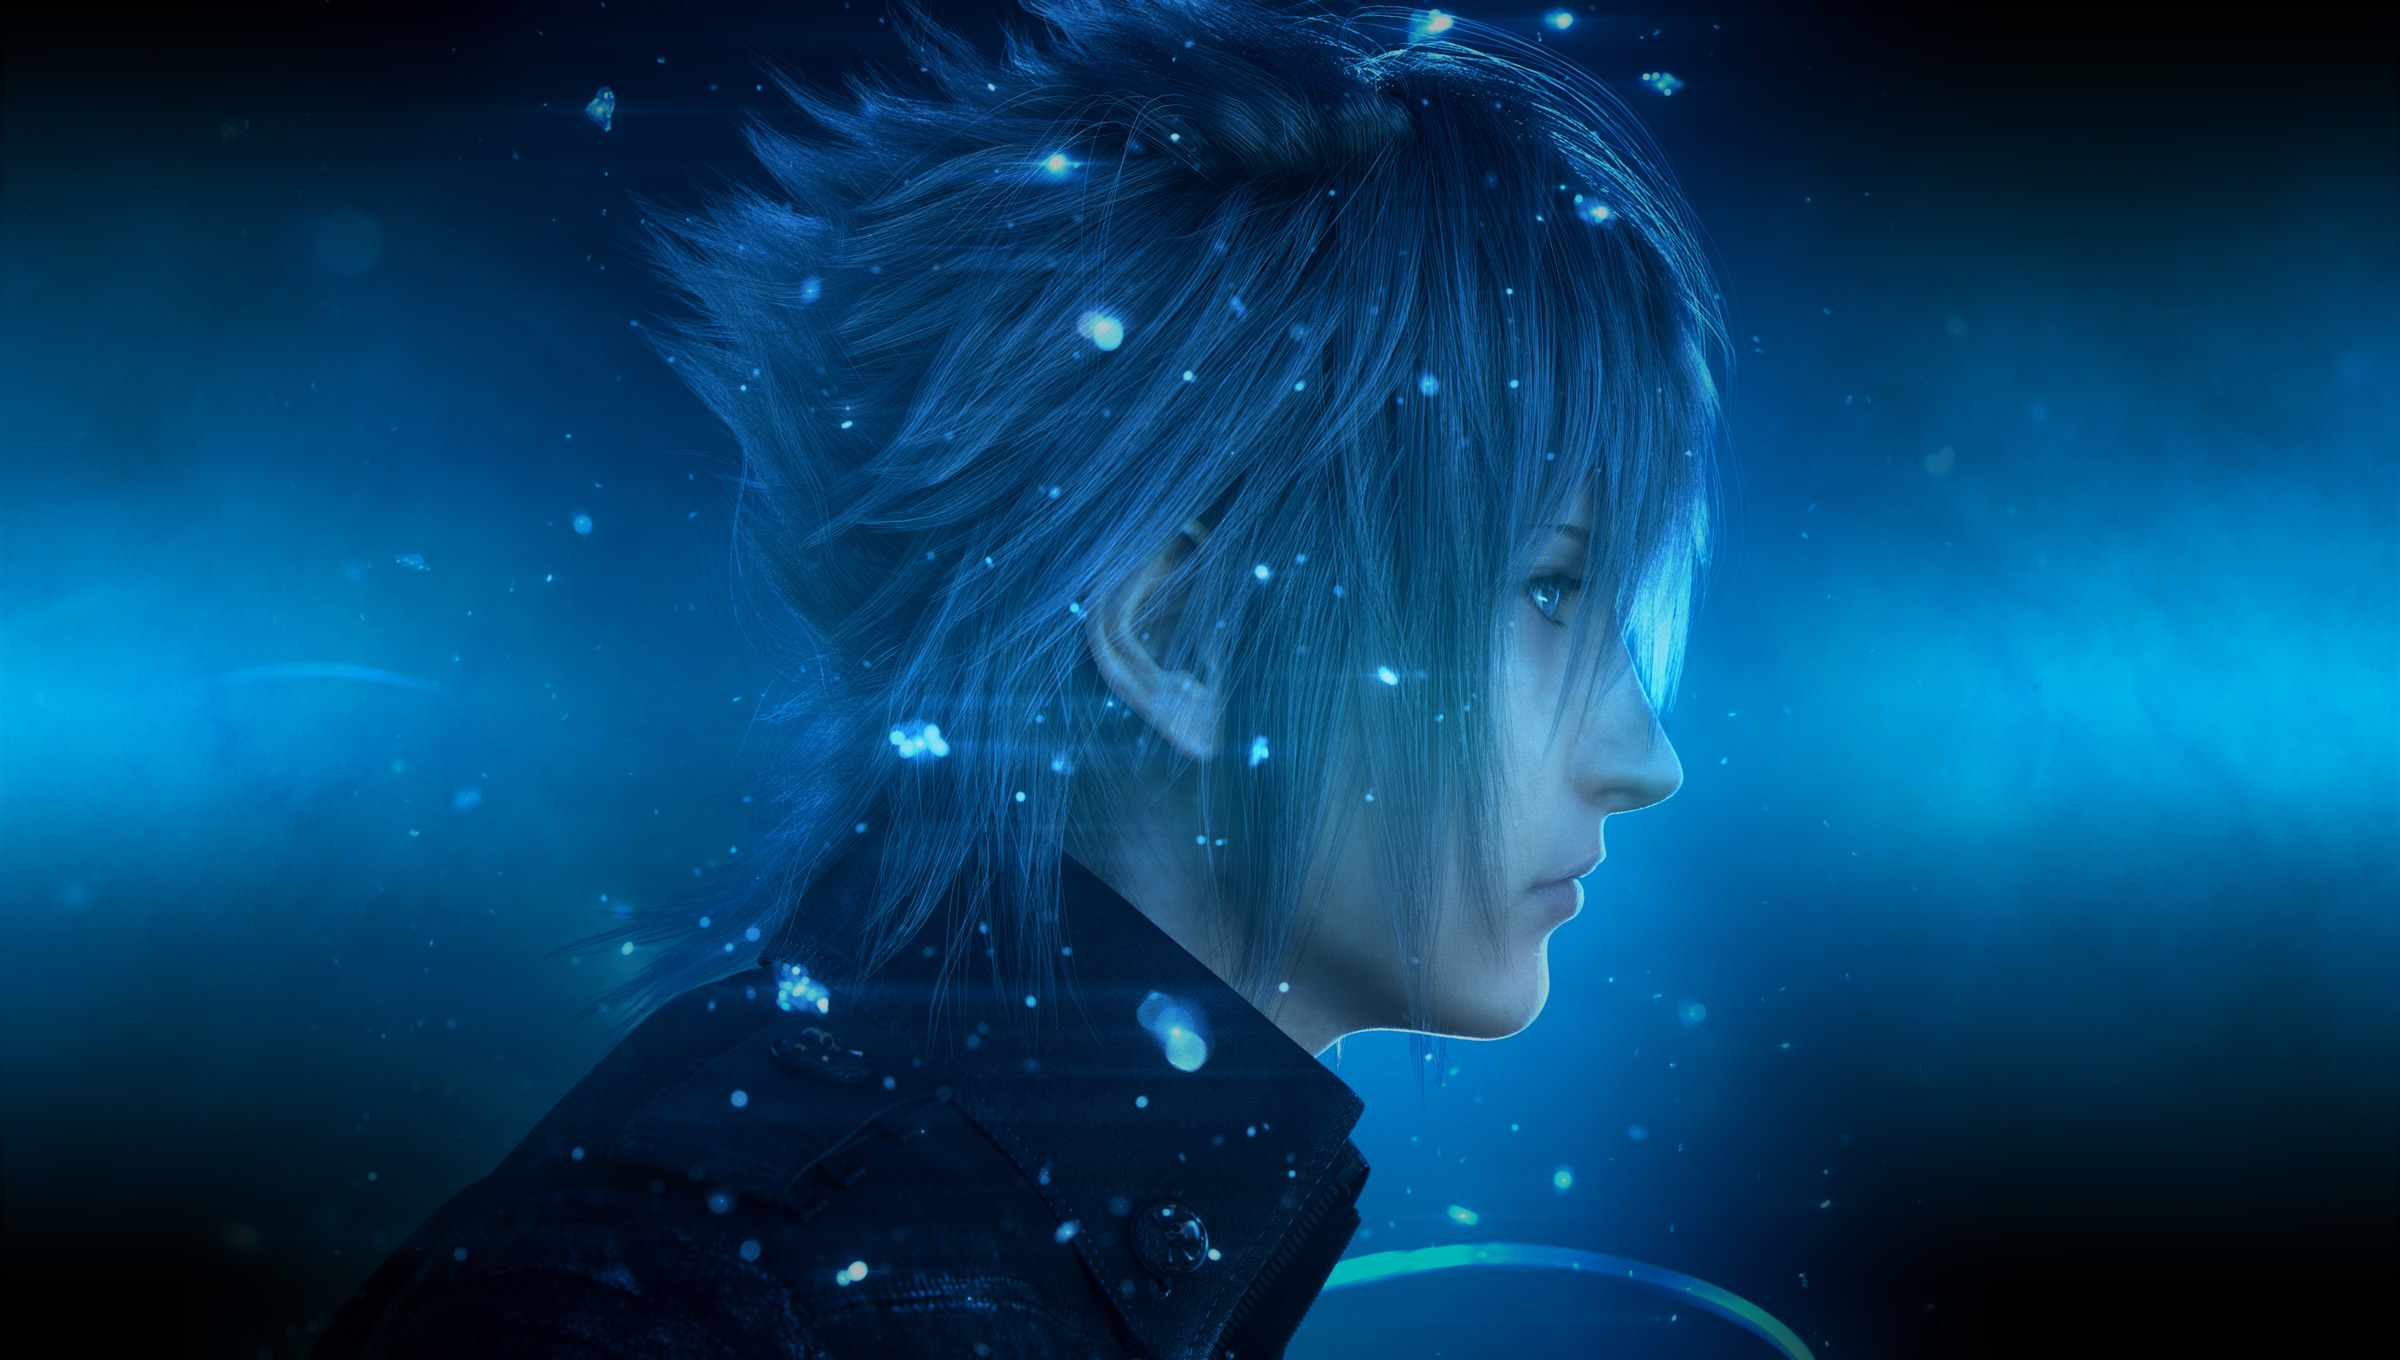 final fantasy xv images noctis wallpaper hd wallpaper and background